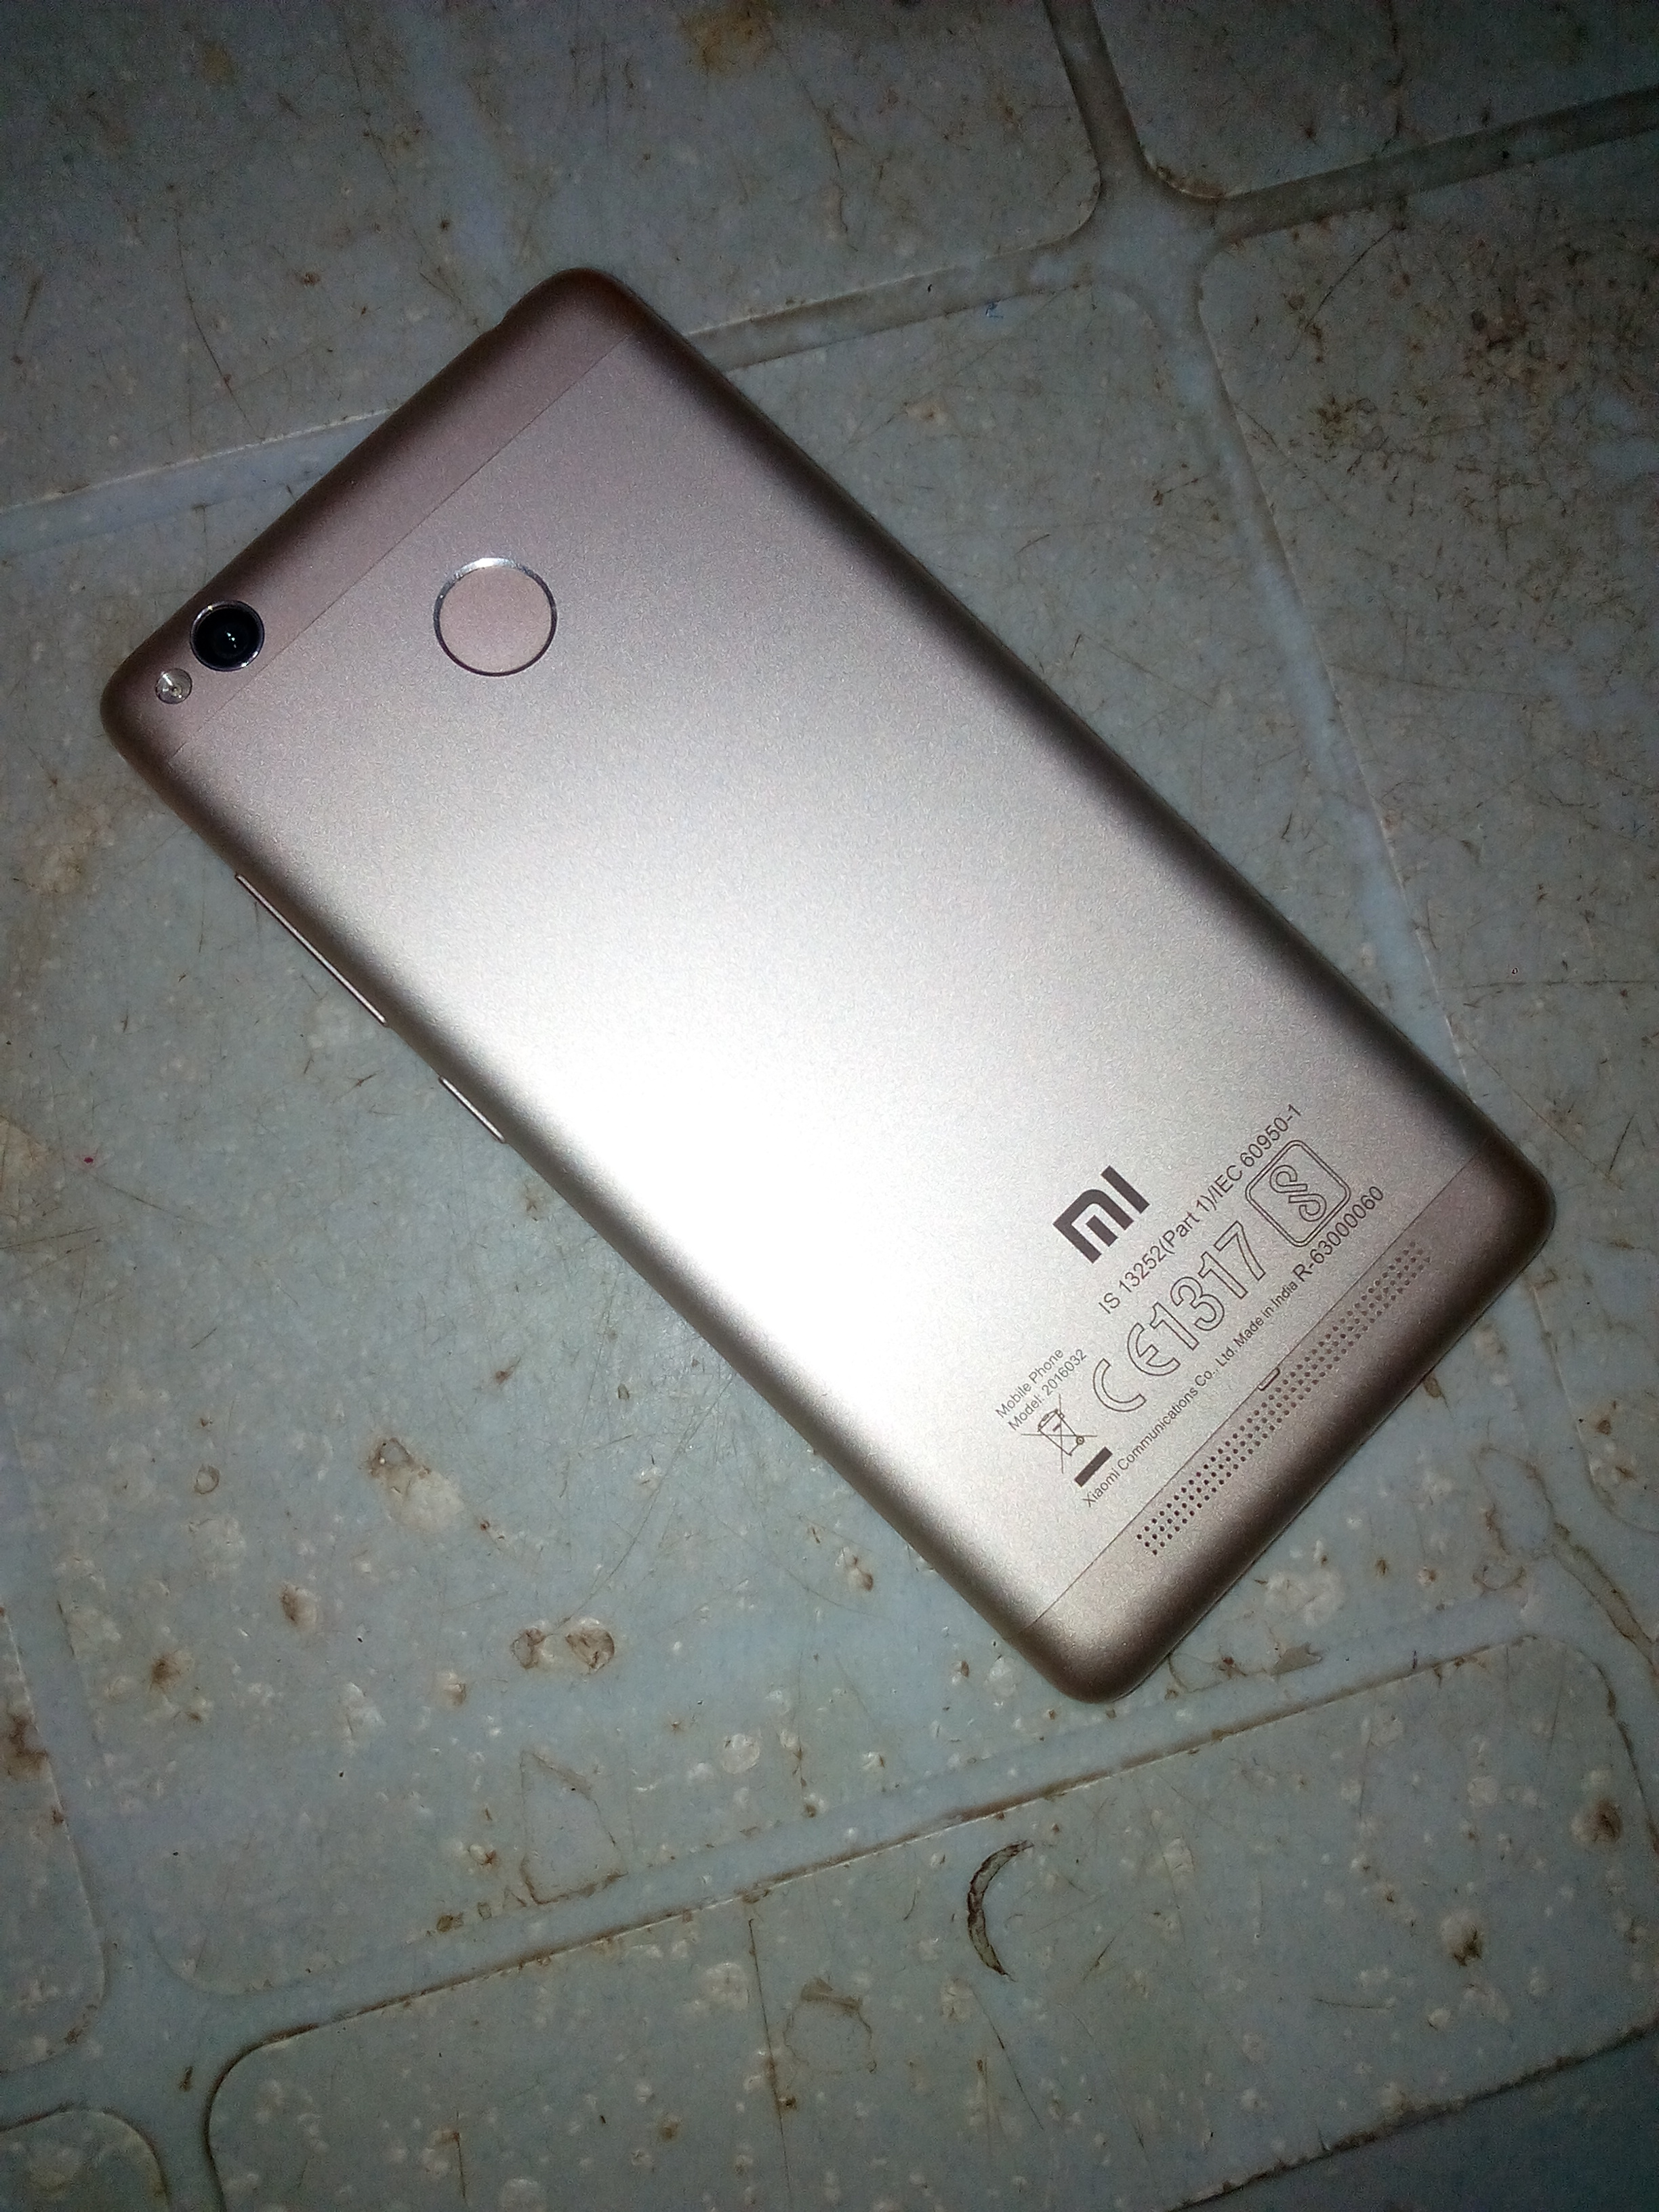 AFTER ONE YEAR EXPERIENCE OF Xiaomi Redmi 3S Prime - XIAOMI REDMI 3S